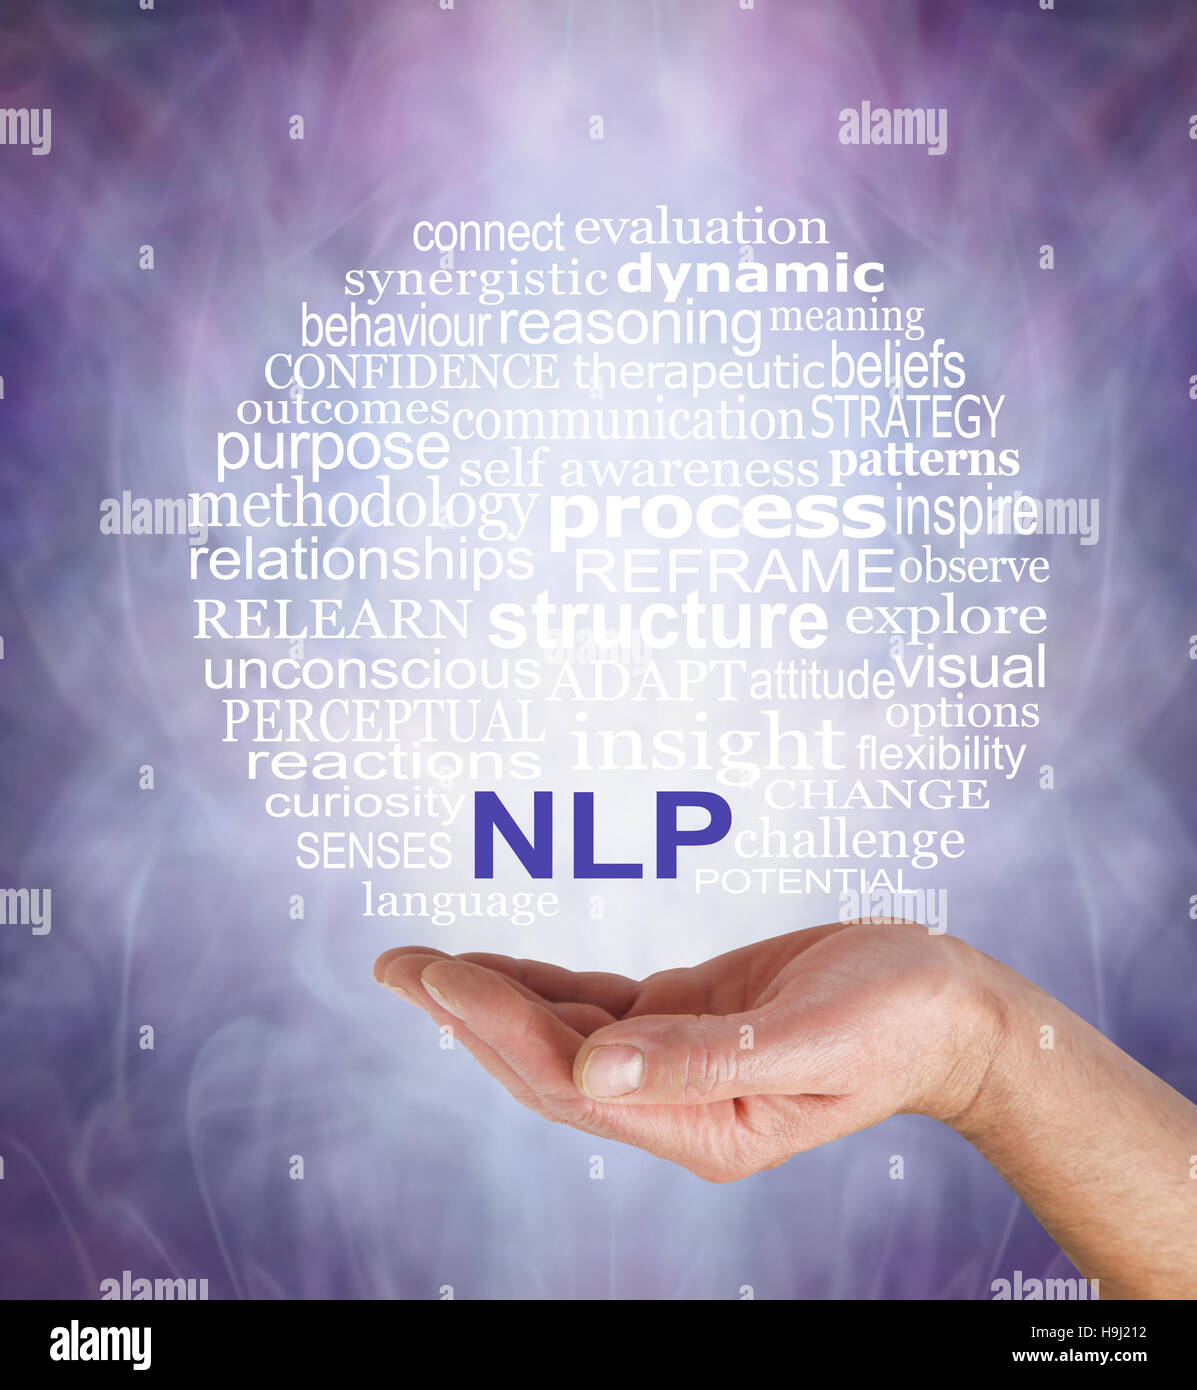 Male hand palm up with a circular NLP word cloud floating above on a misty muted purple grey background - Stock Image